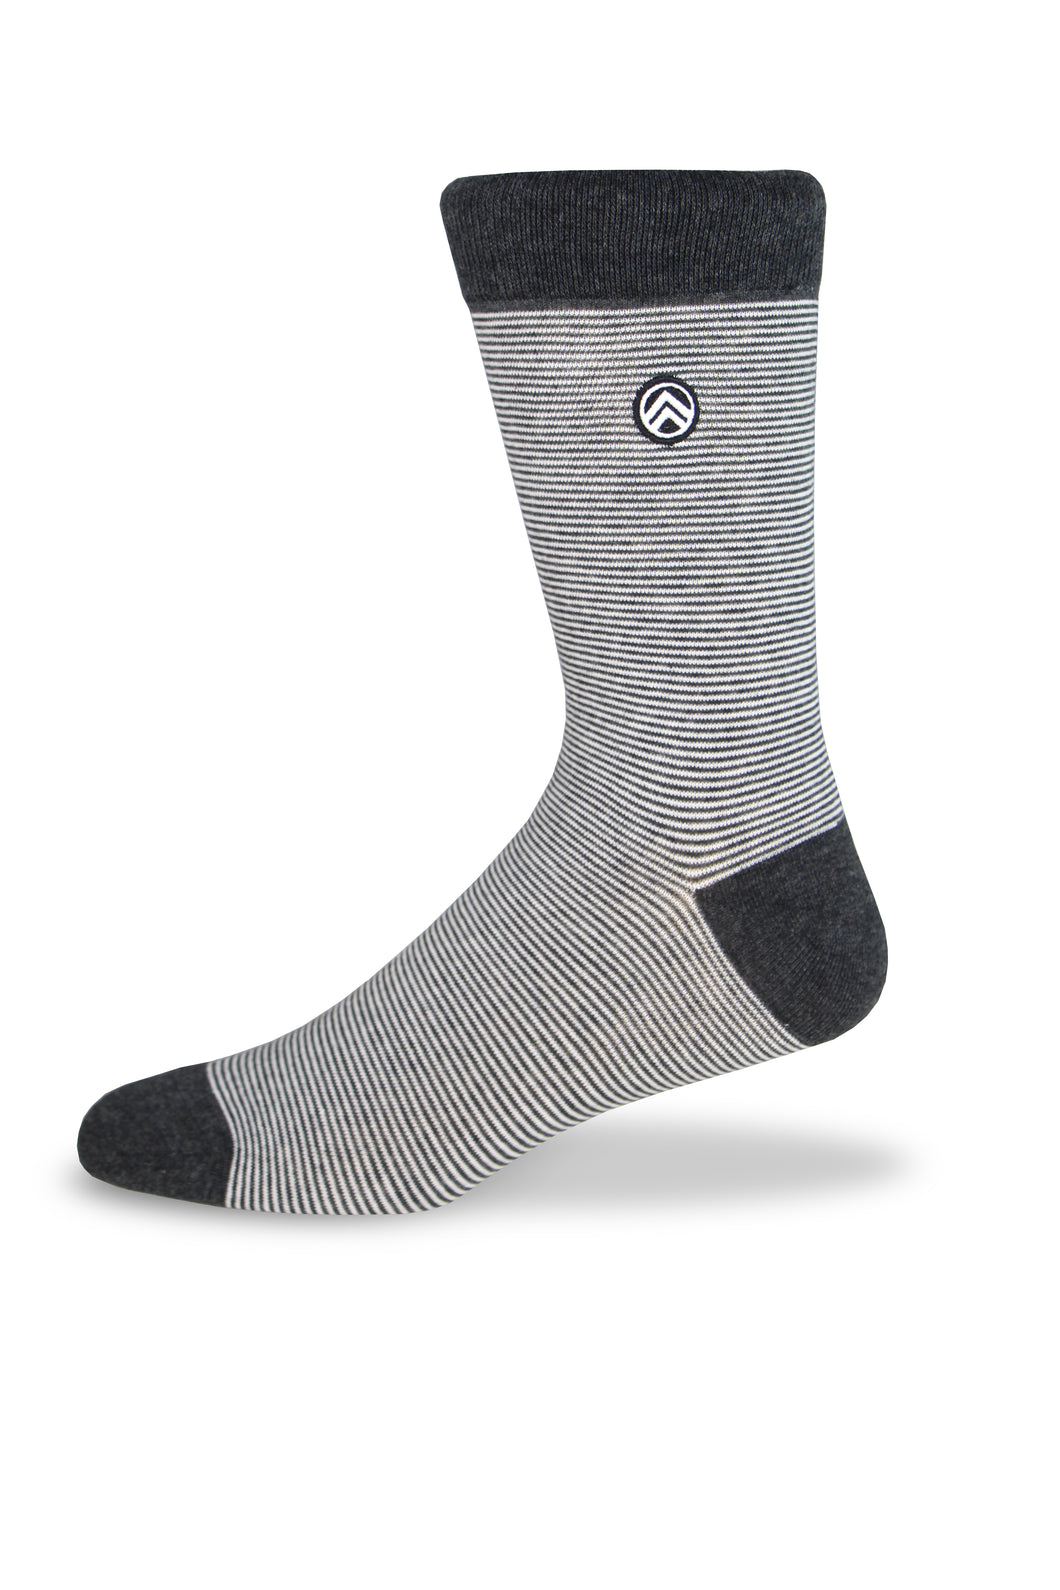 Sky Footwear Socks, Shades of Grey